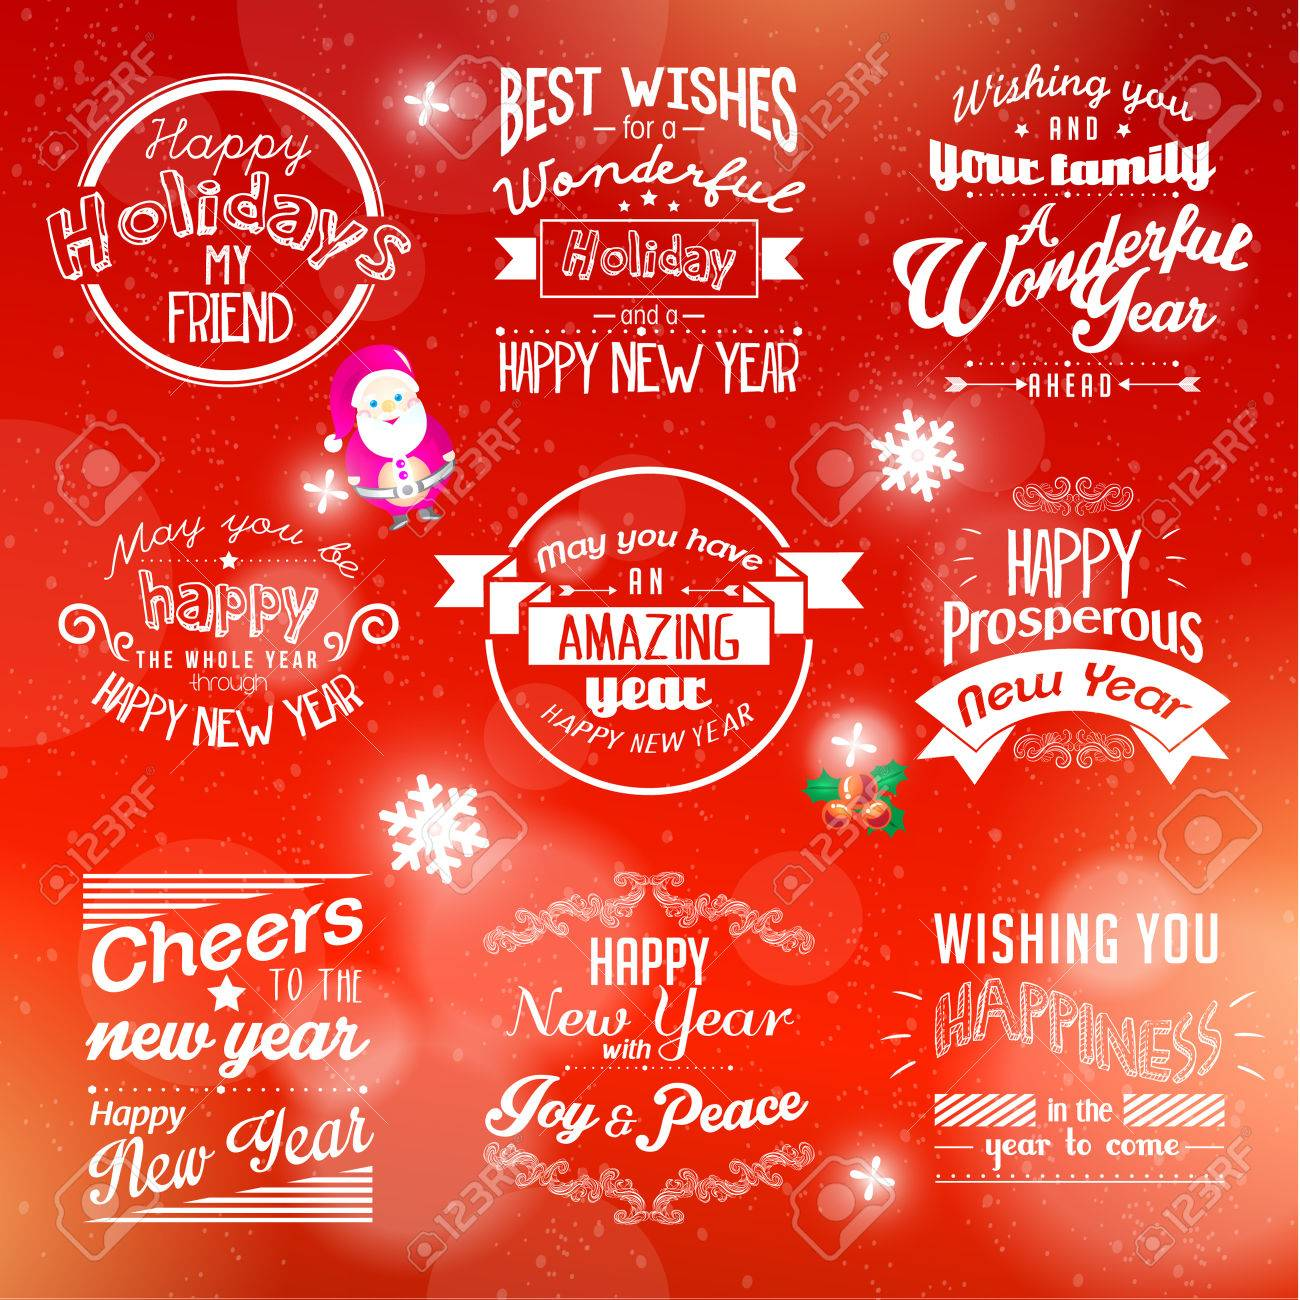 Merry christmas and happy new year 2015 season greetings quote merry christmas and happy new year 2015 season greetings quote vector design stock vector 33533222 m4hsunfo